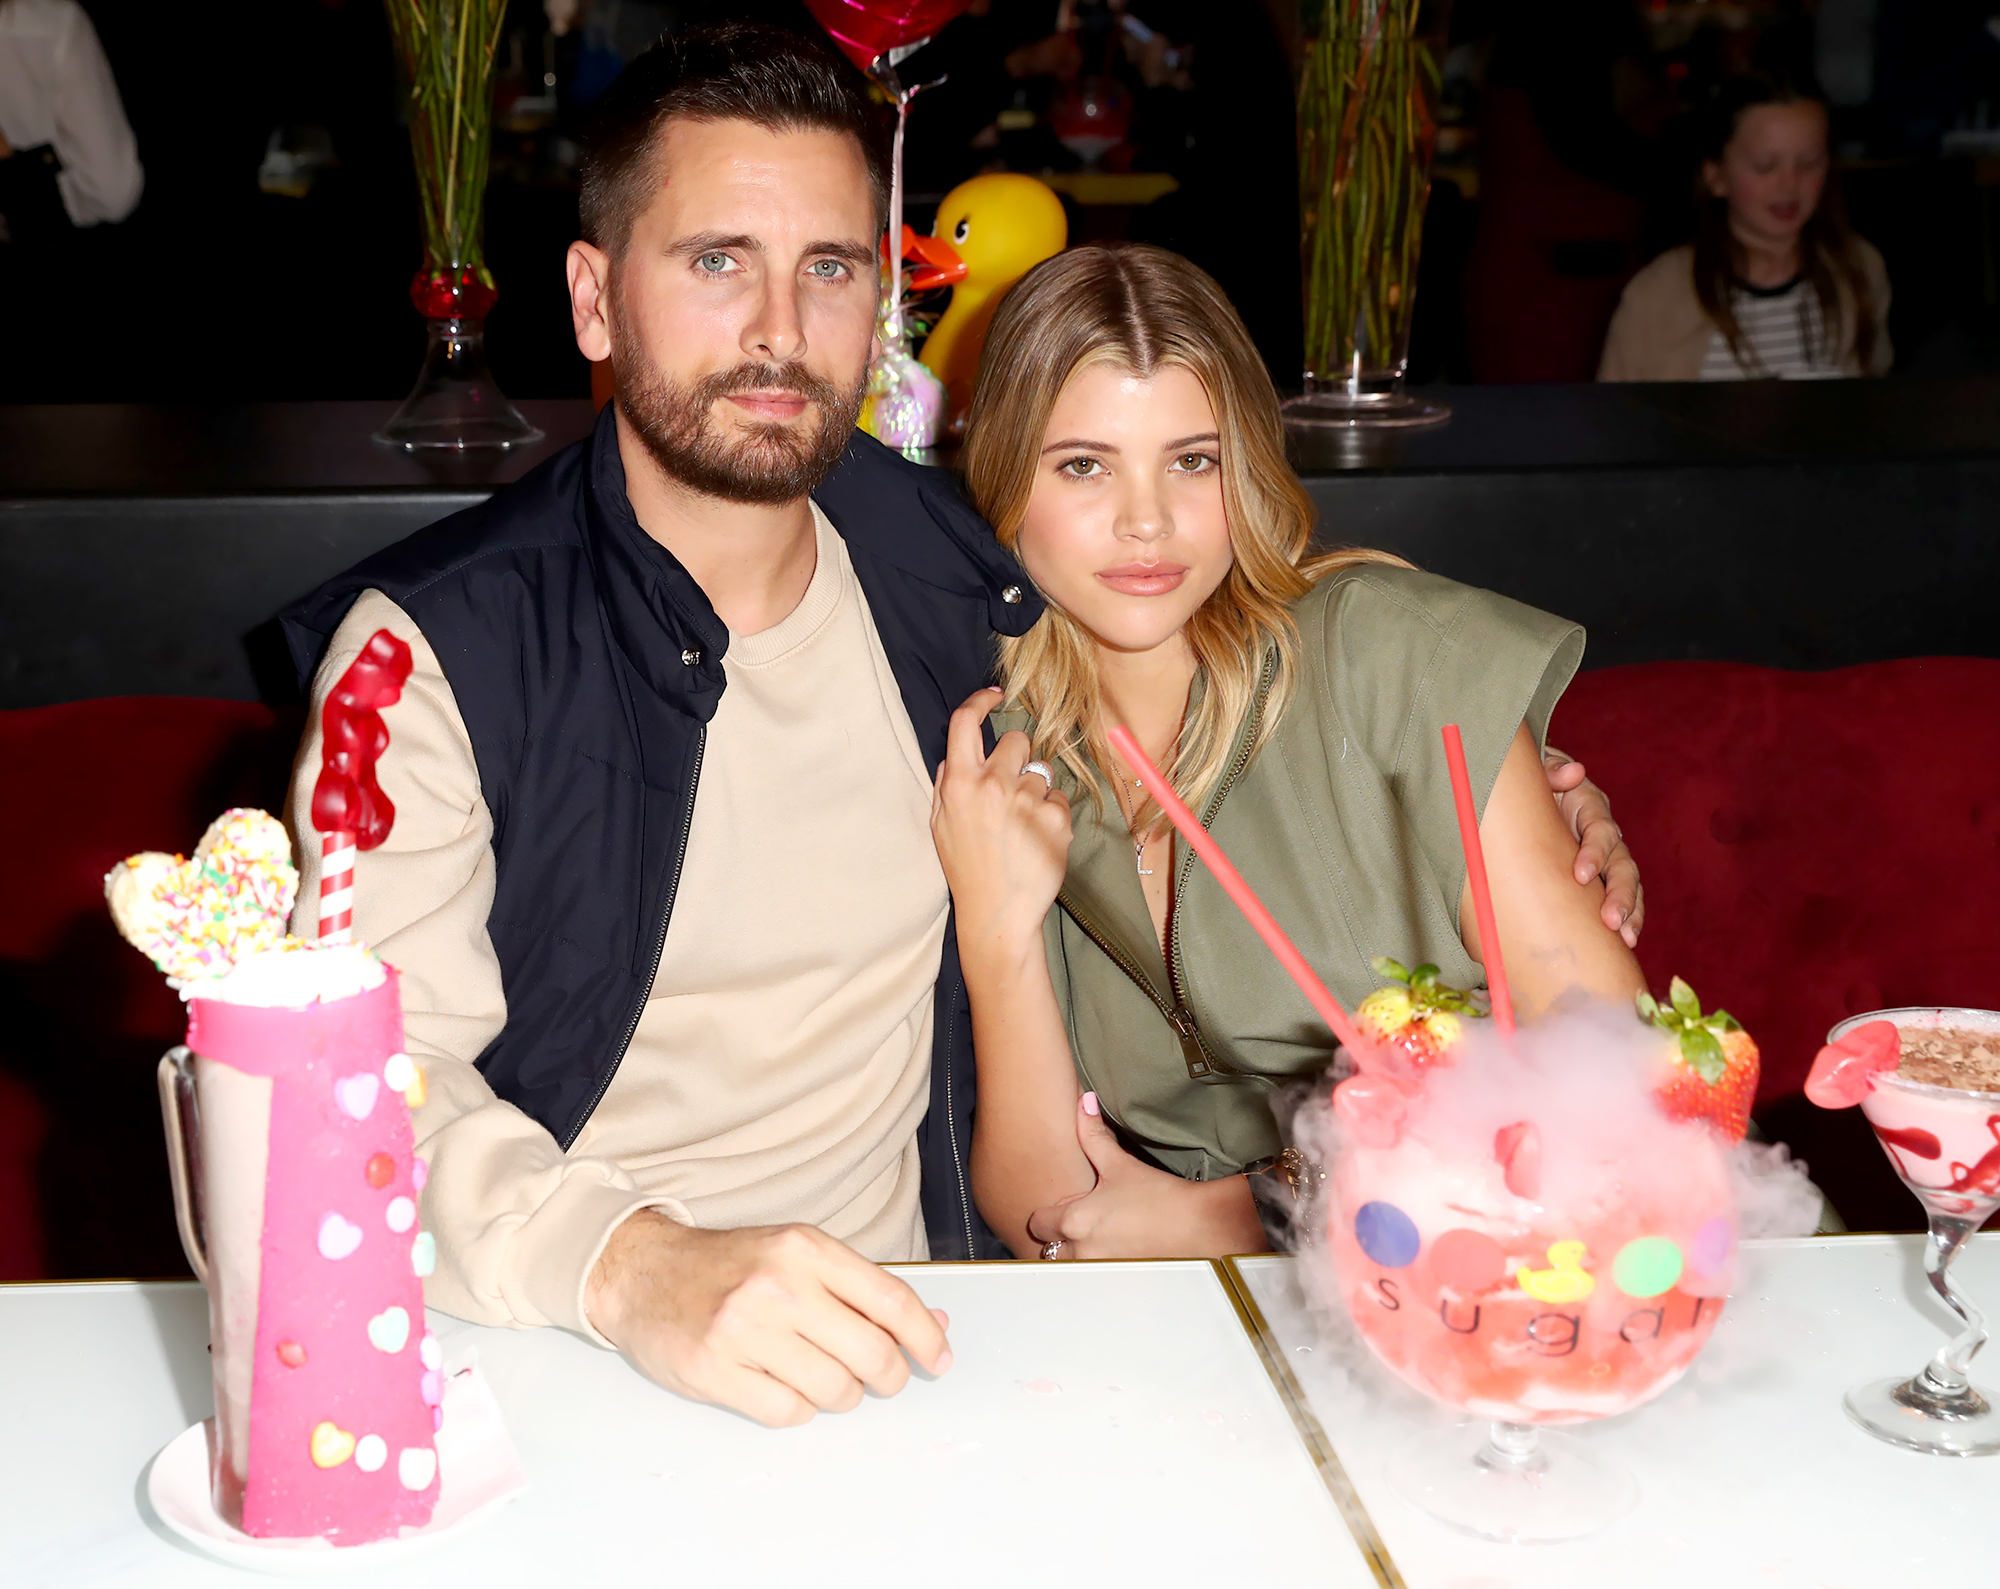 Scott-Disick-and-Sofia-Richie-valentines-day - Scott Disick and Sofia Richie celebrate Valentine's Day at San Diego's new Theatre Box® Entertainment Complex with dinner at Sugar Factory American Brasserie at Theatre Box® on February 14, 2019 in San Diego, California.